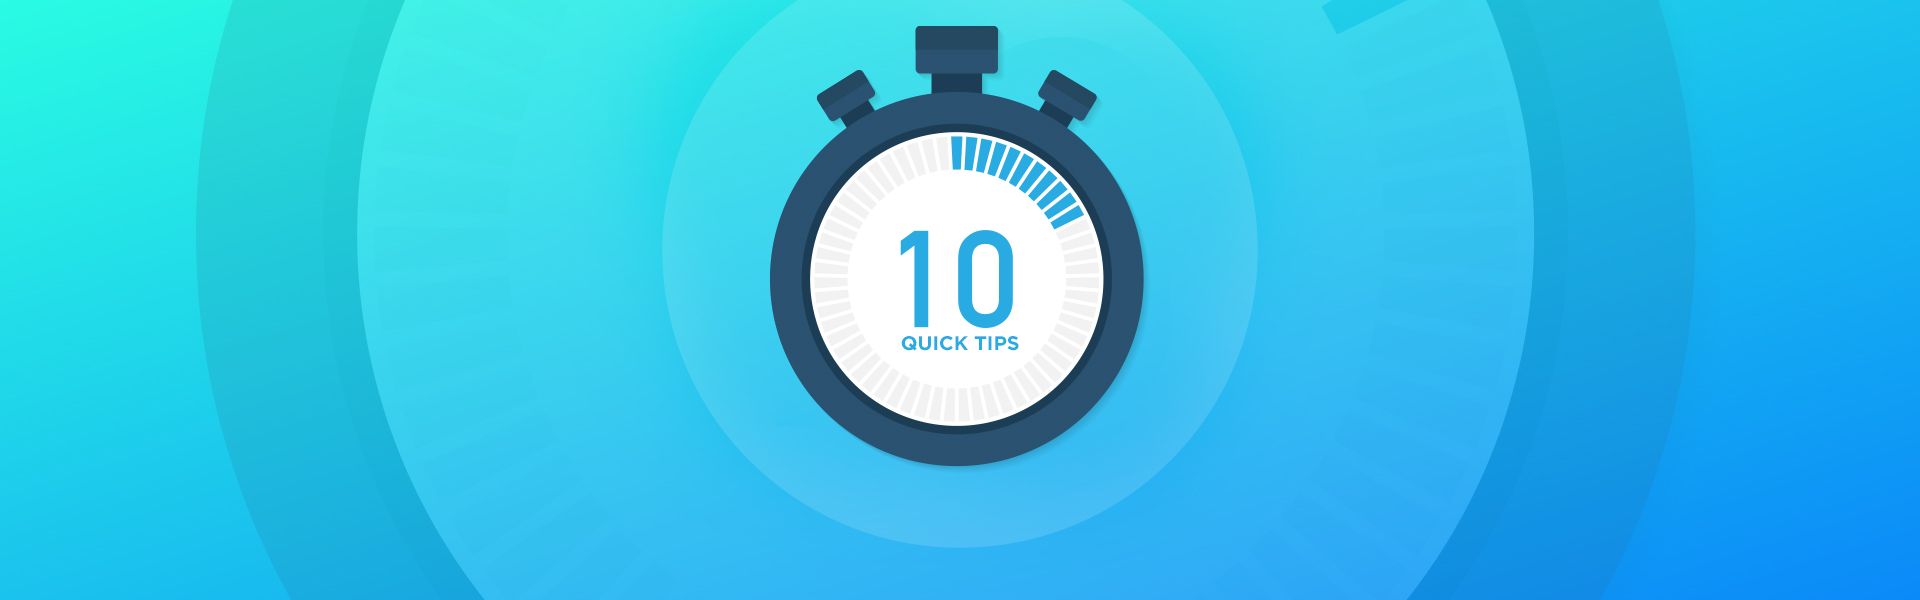 10 Quick Tips About Lead Generation by Lead Genera